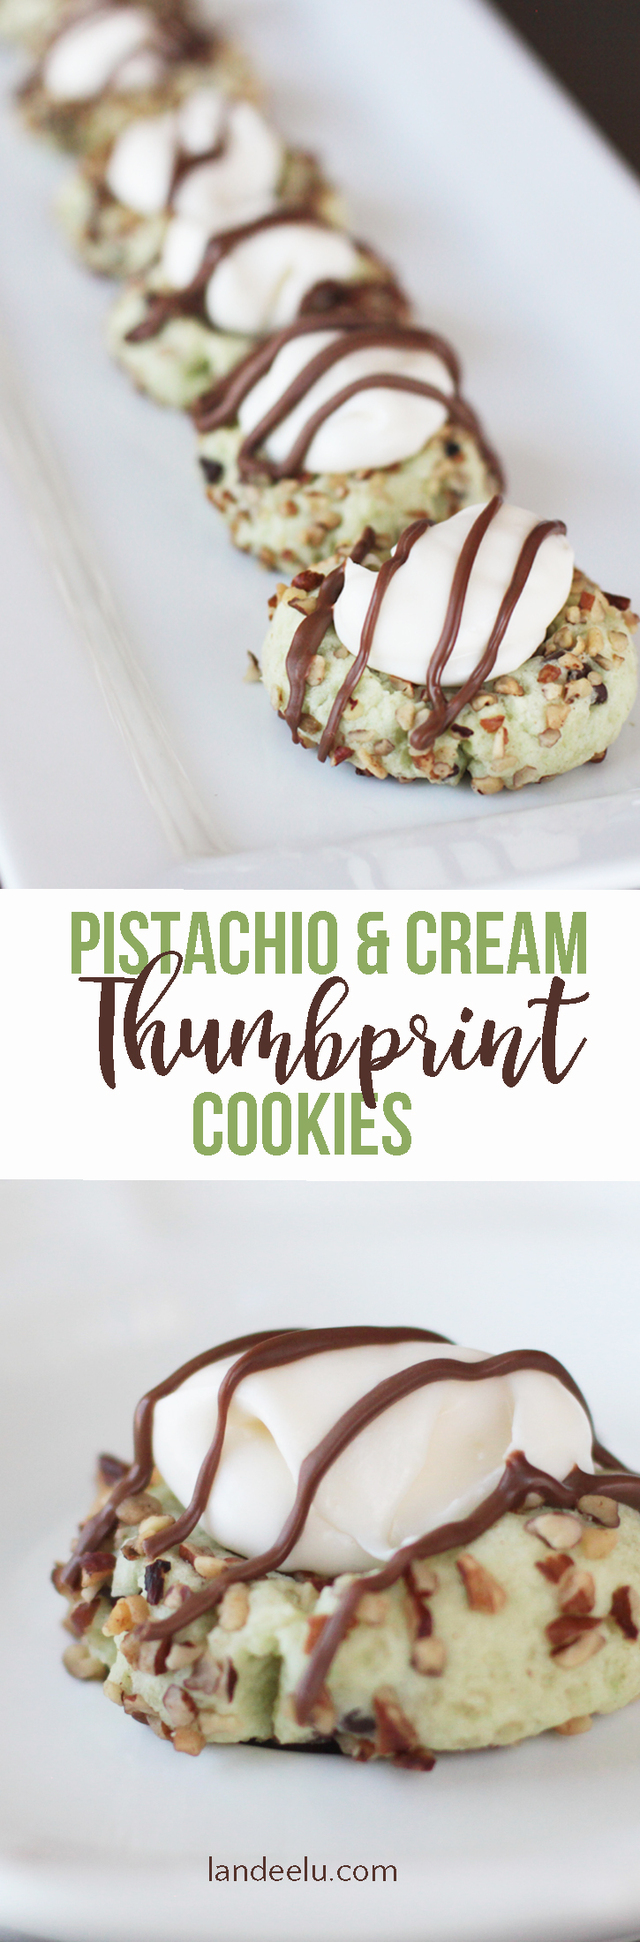 Thumbprint Cookies: Pistachio and Cream